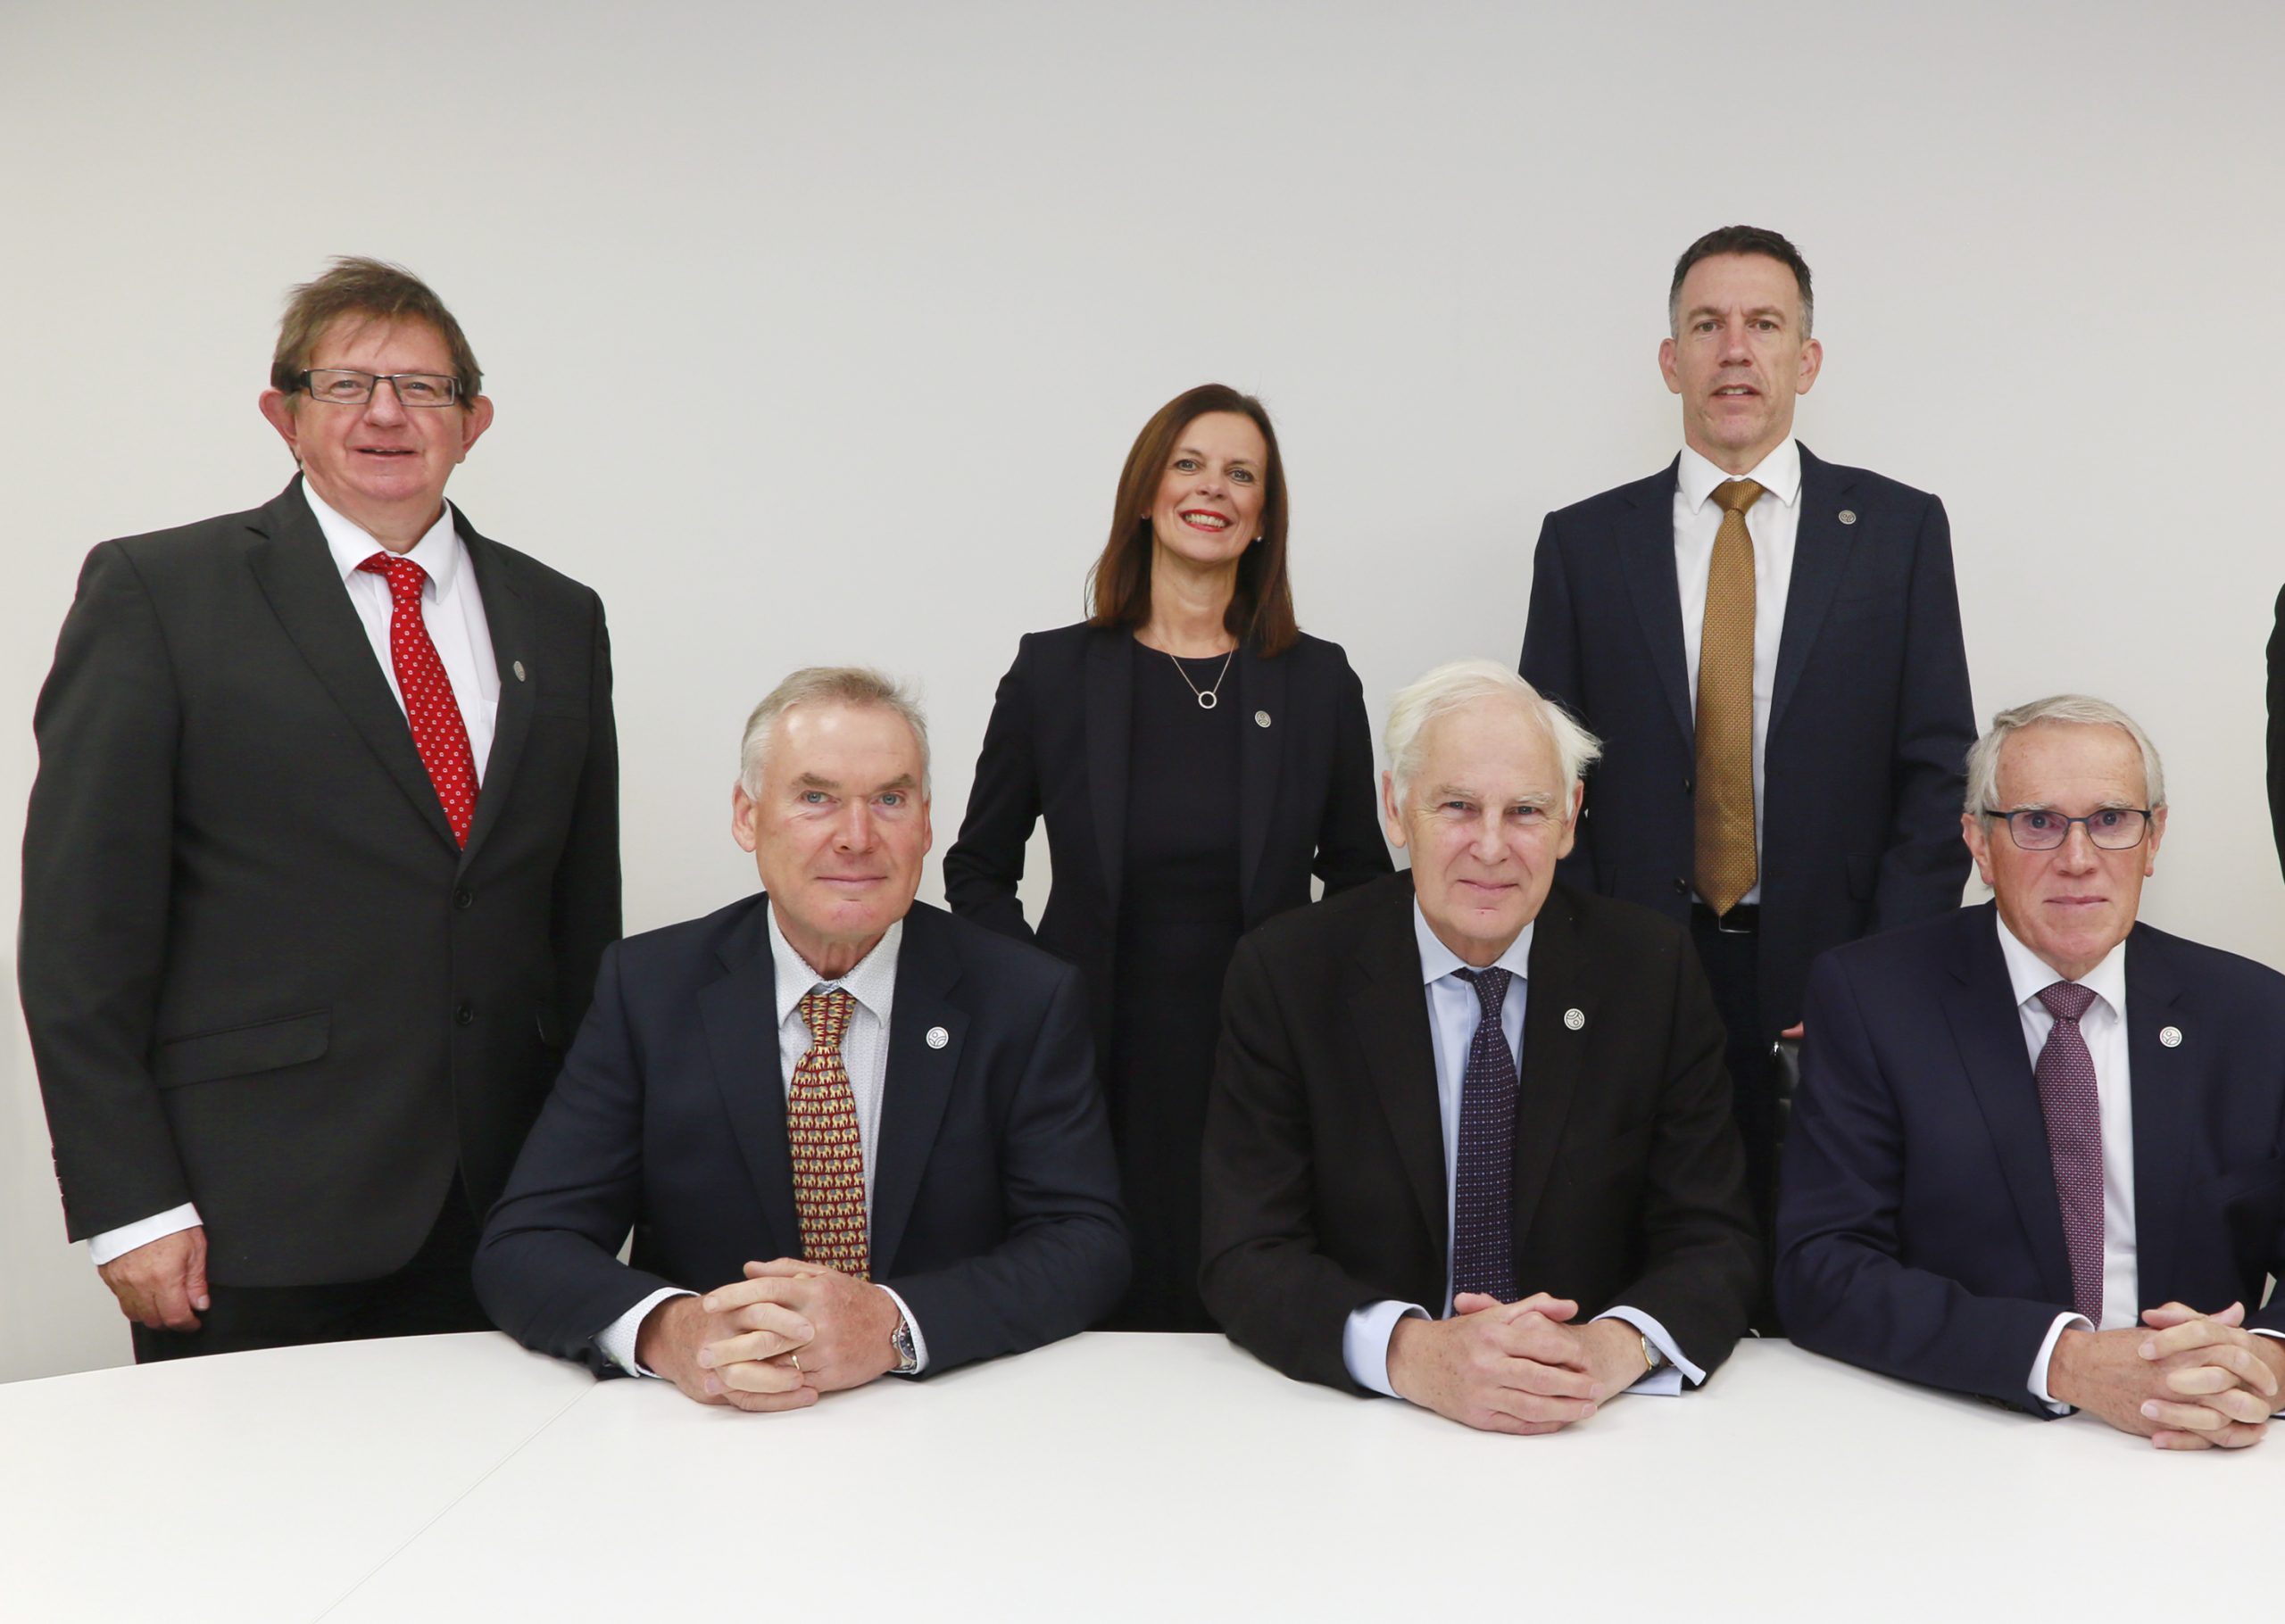 West Country house builder welcomes new Joint Acting Managing Directors